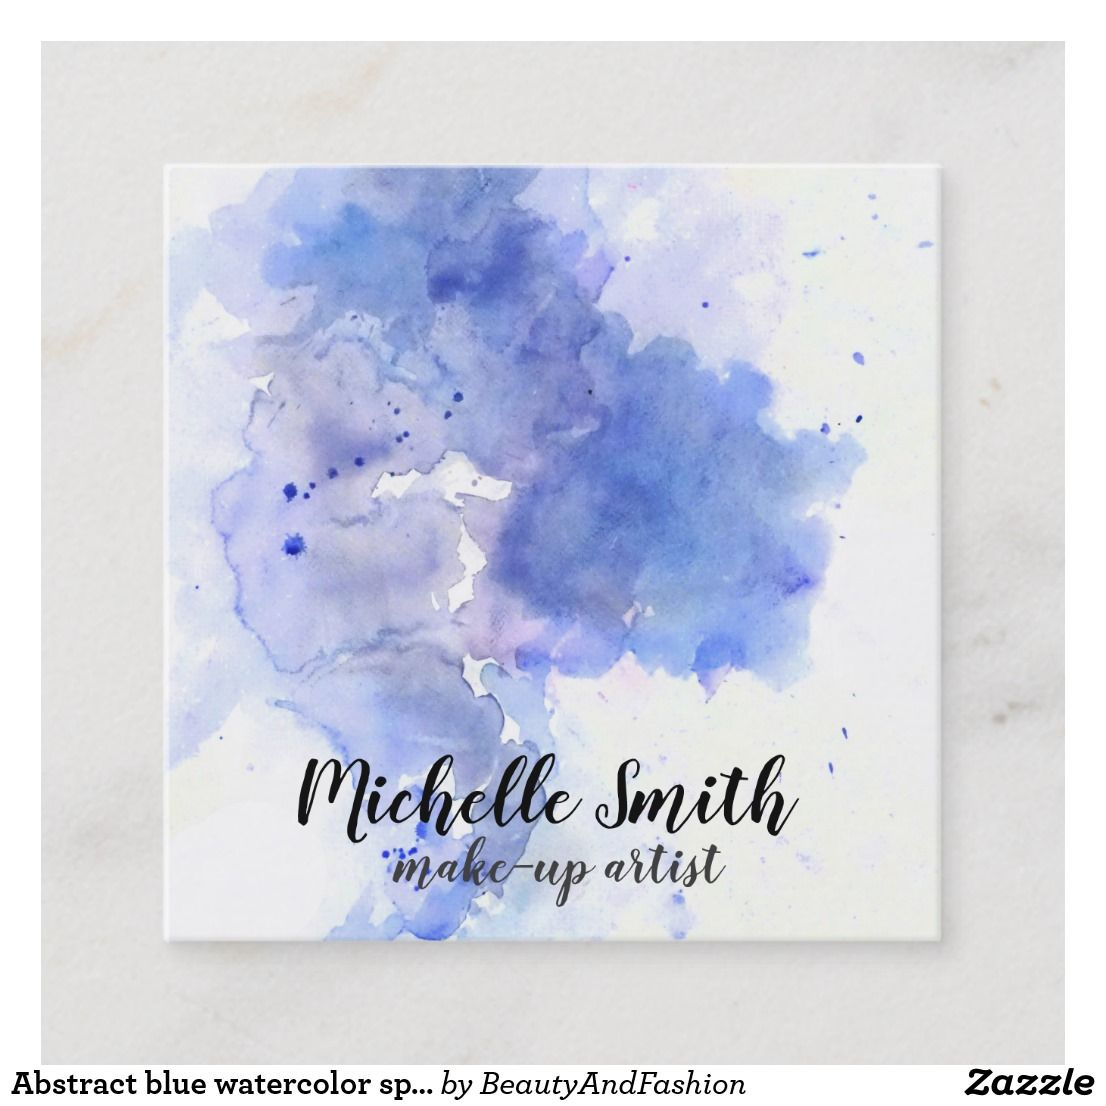 Abstract Blue Watercolor Splash Make Up Artist Square Business